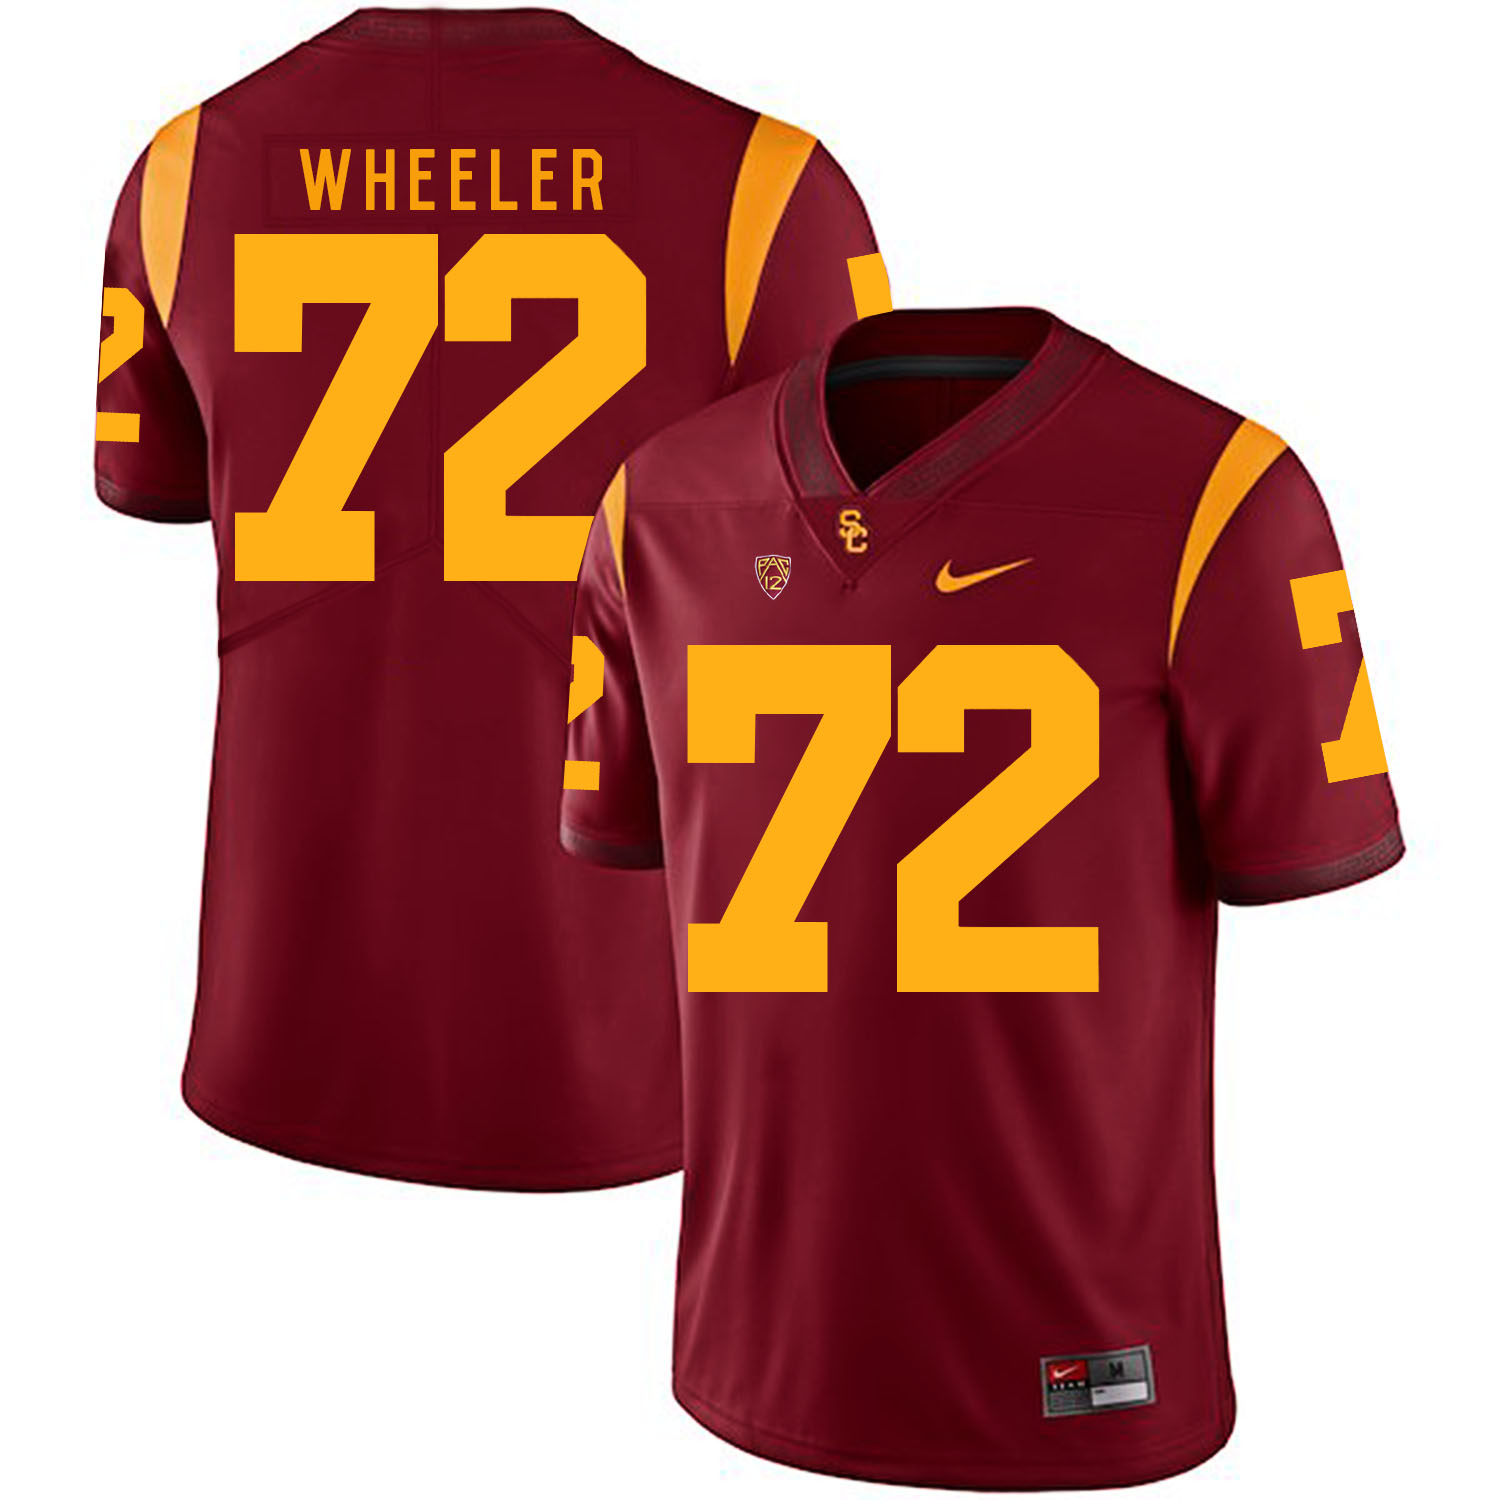 USC Trojans 72 Chad Wheeler Red College Football Jersey